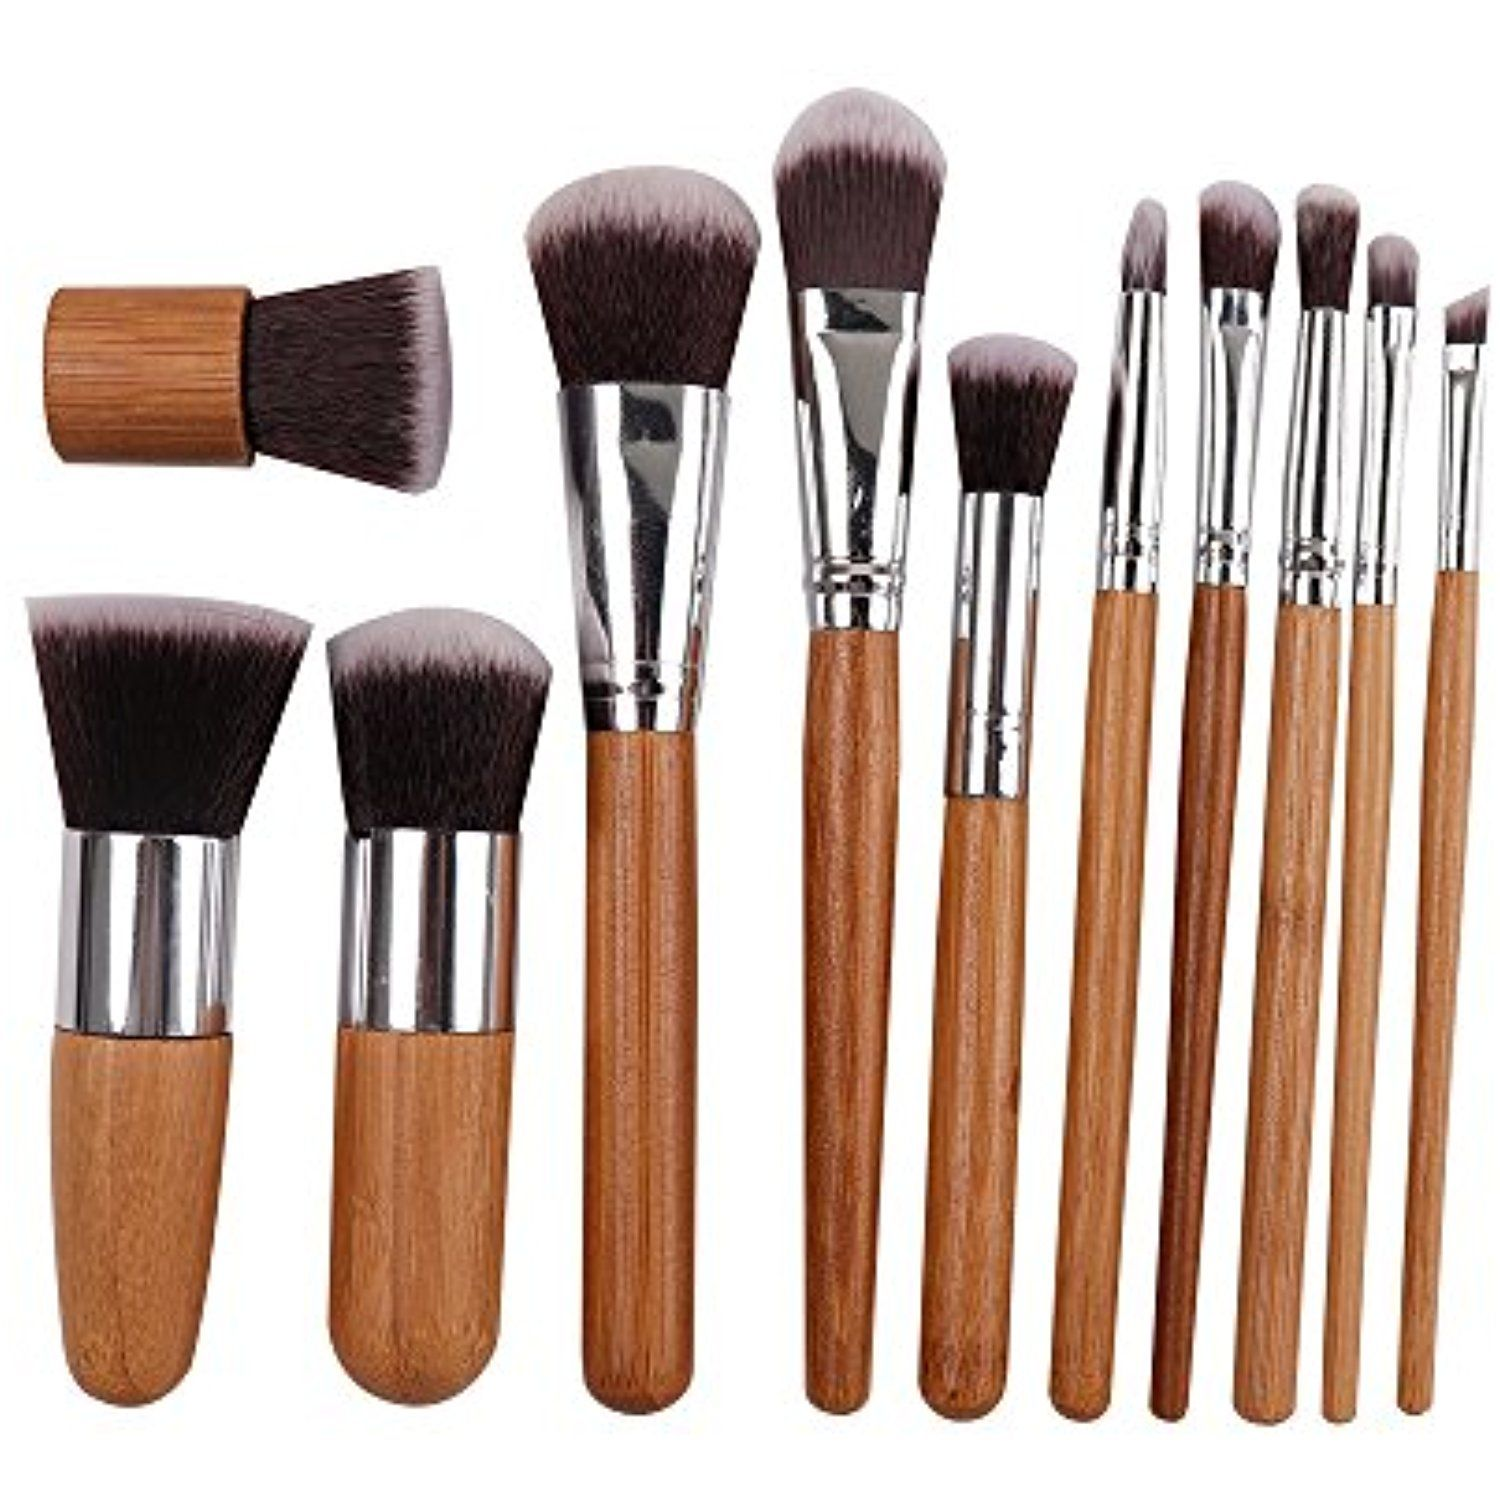 Bamboo Premium Synthetic Kabuki Makeup Brush Set,